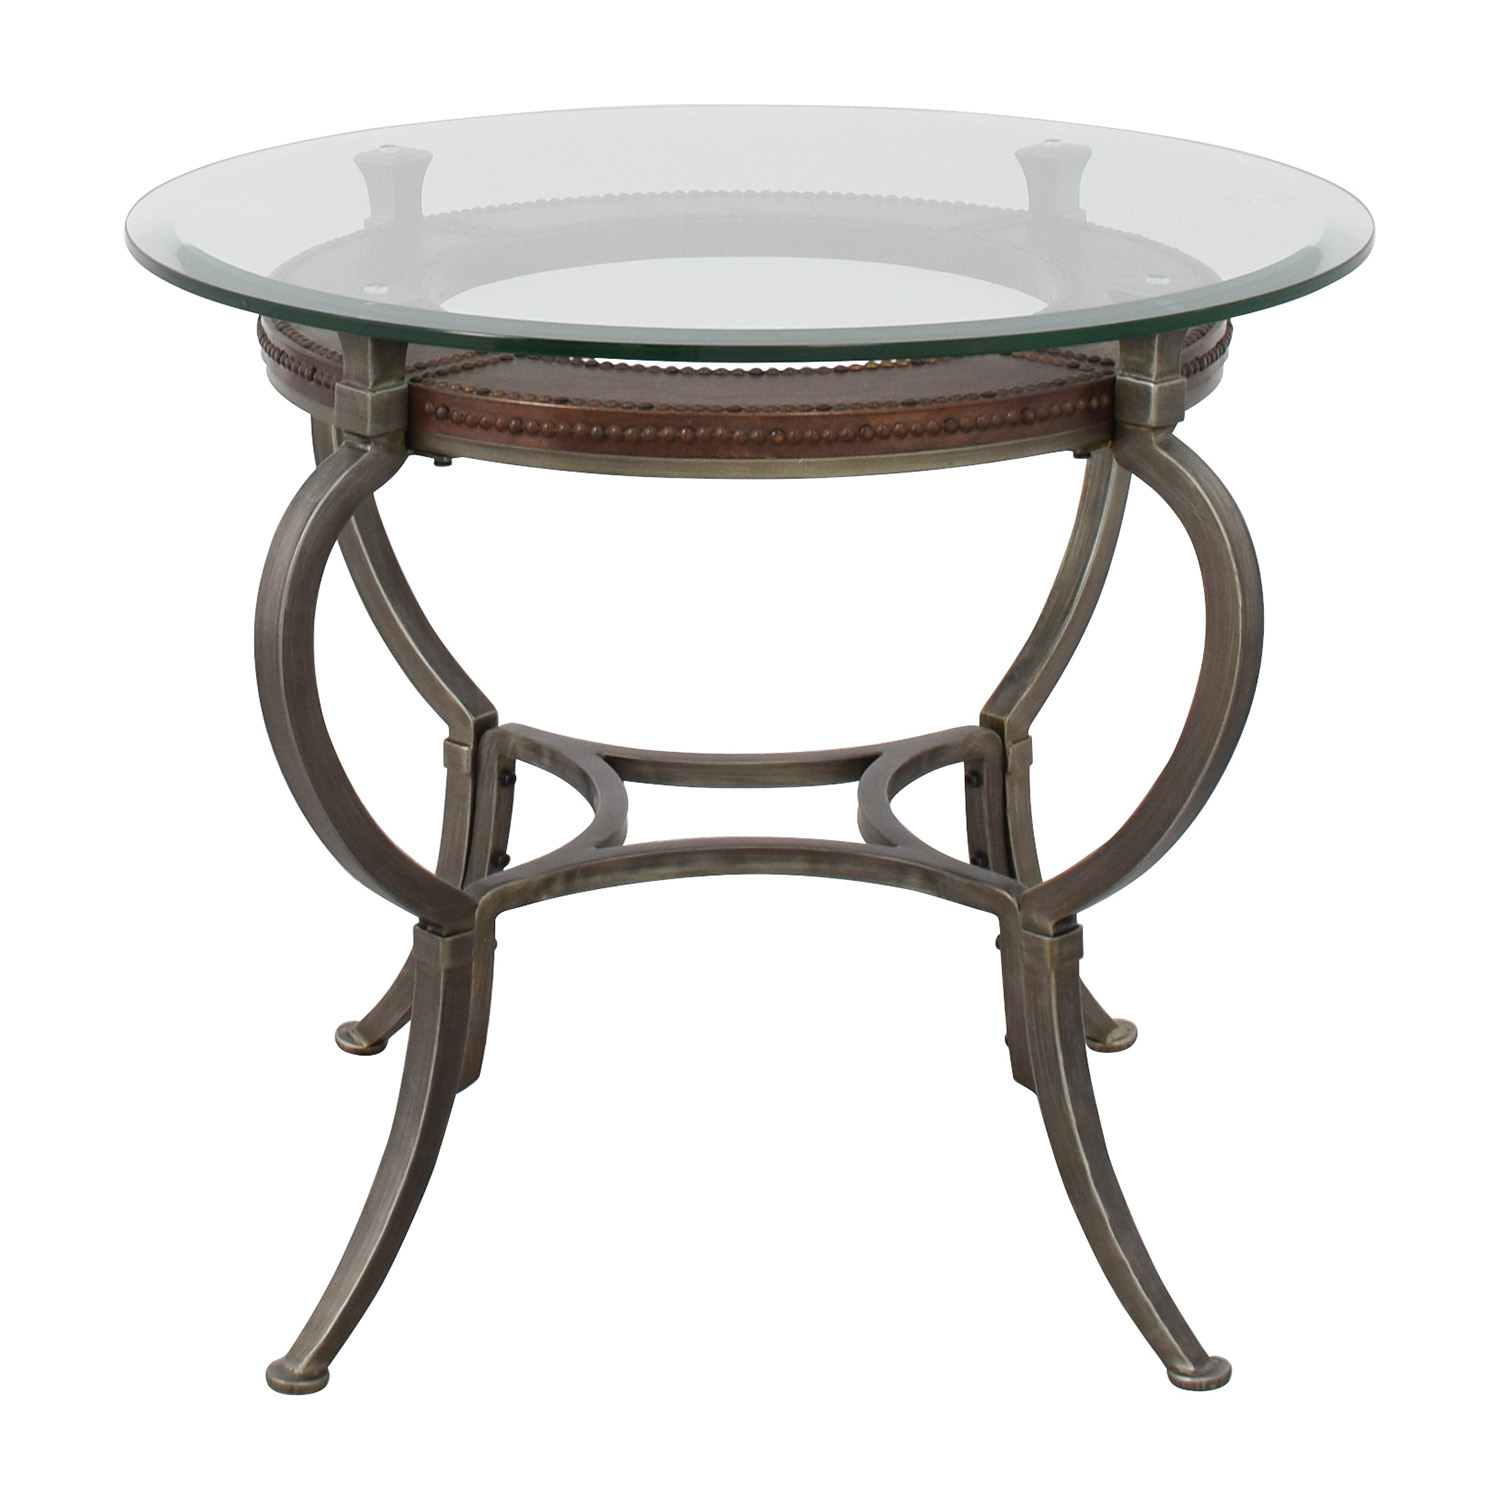 off macy artistica round glass and metal end table macys coffee tables nyc skinny sofa ikea thomasville furniture piece nesting chip gaines home garden set three acacia wood diy